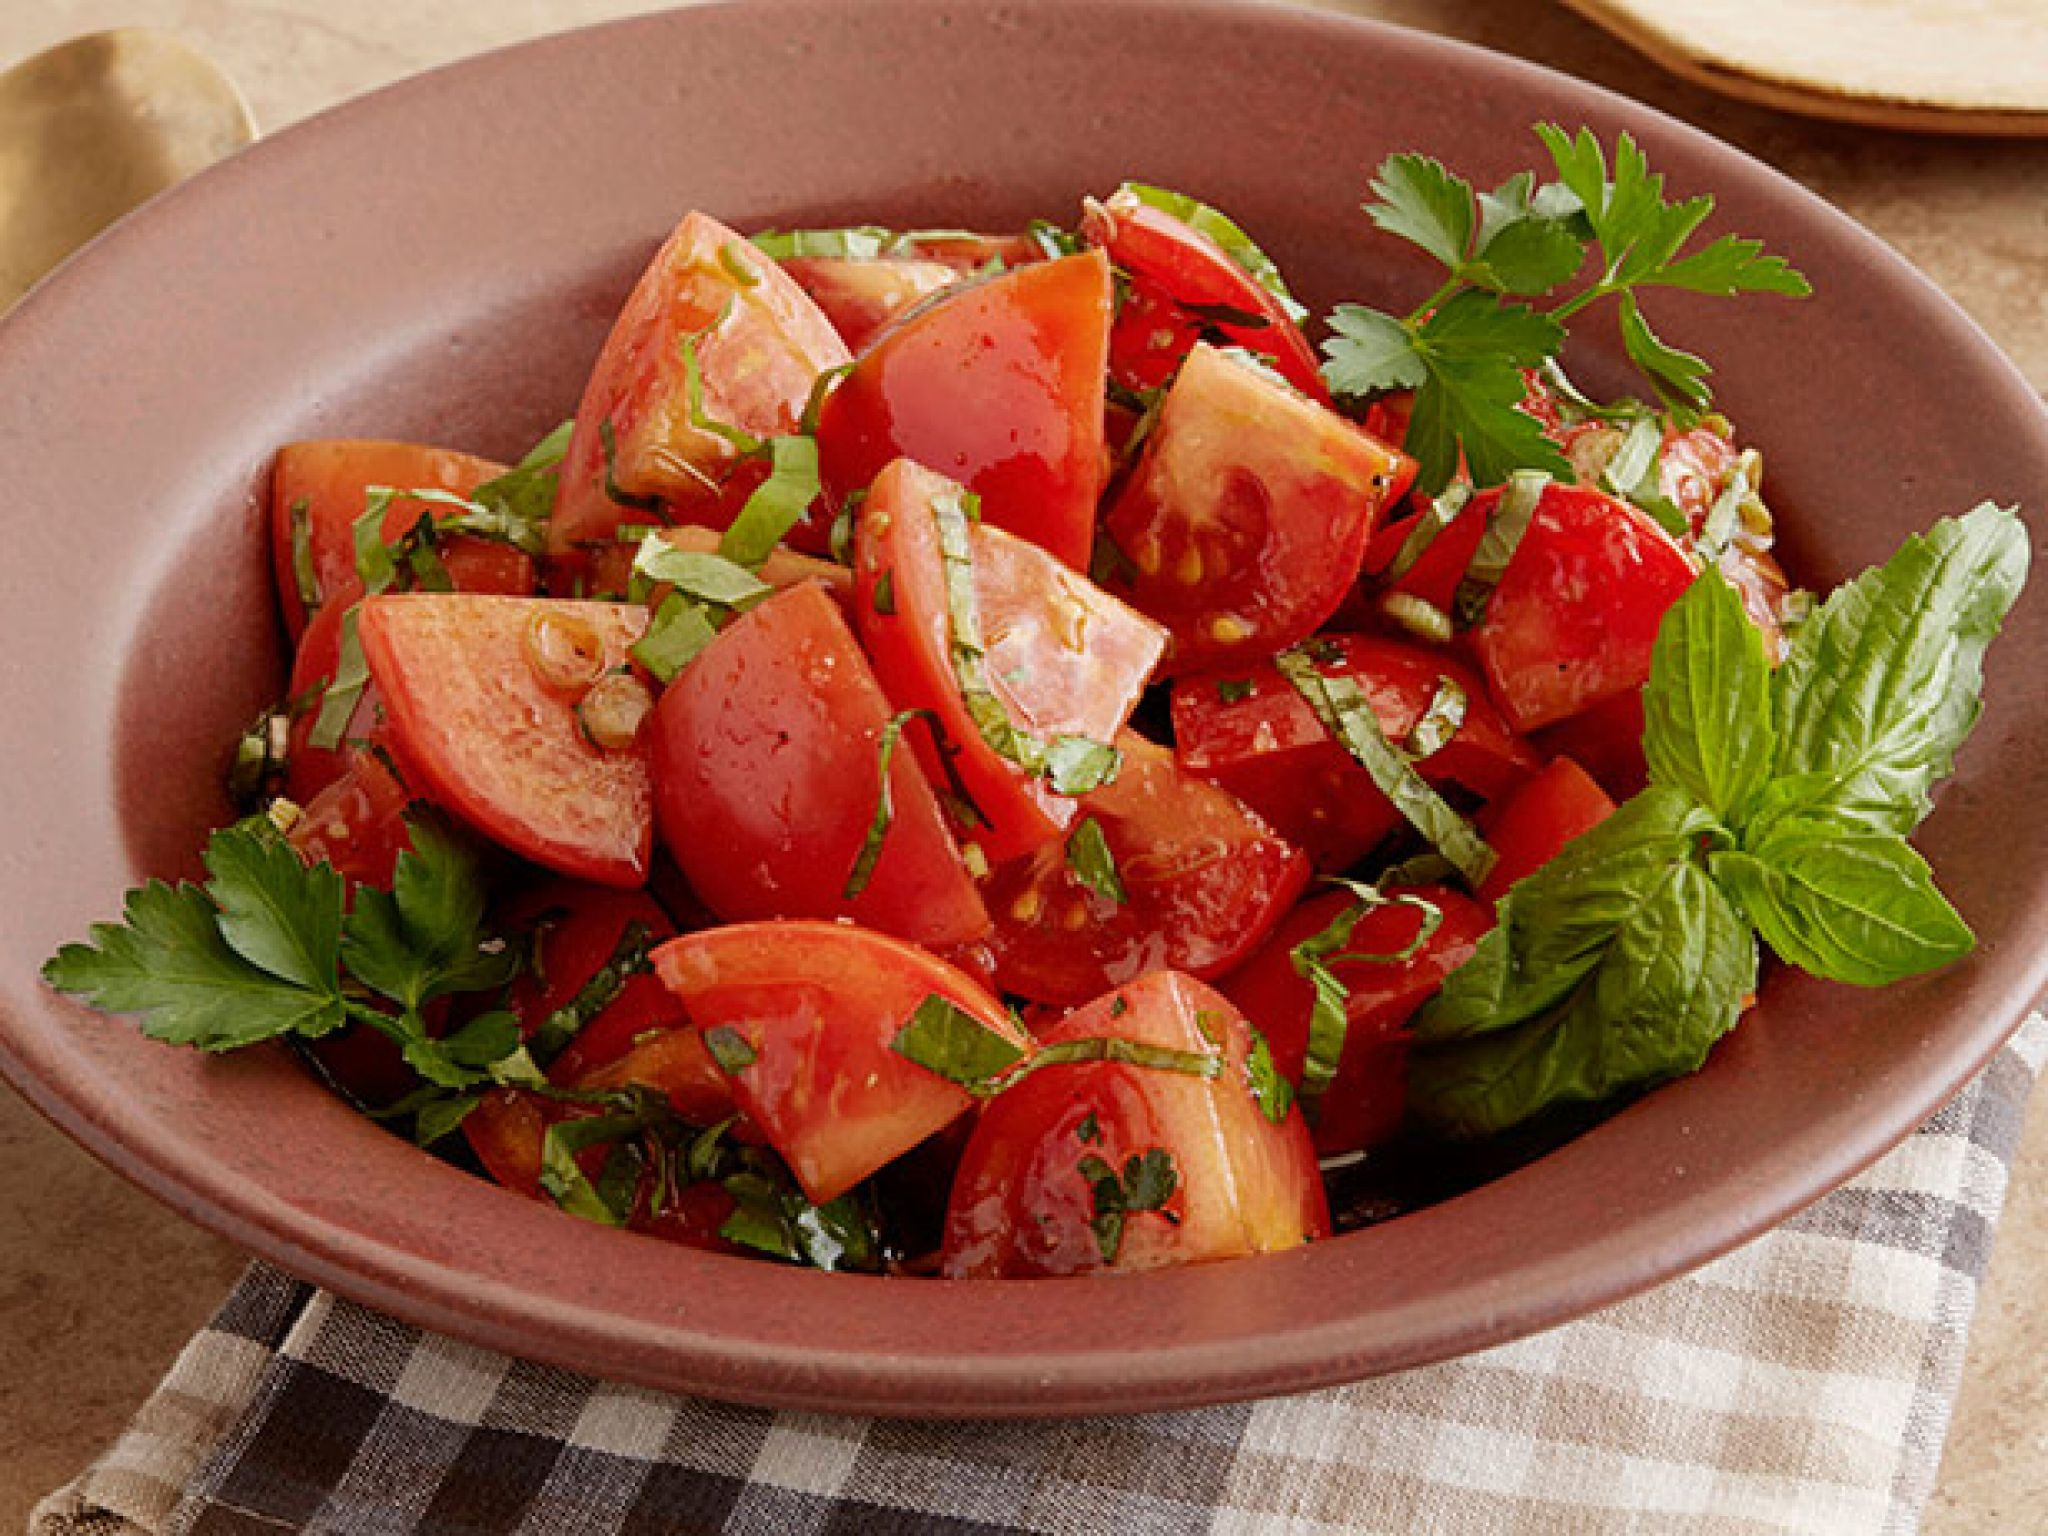 Marinated tomato salad with herbs recipe from ree drummond via food marinated tomato salad with herbs recipe from ree drummond via food network forumfinder Image collections